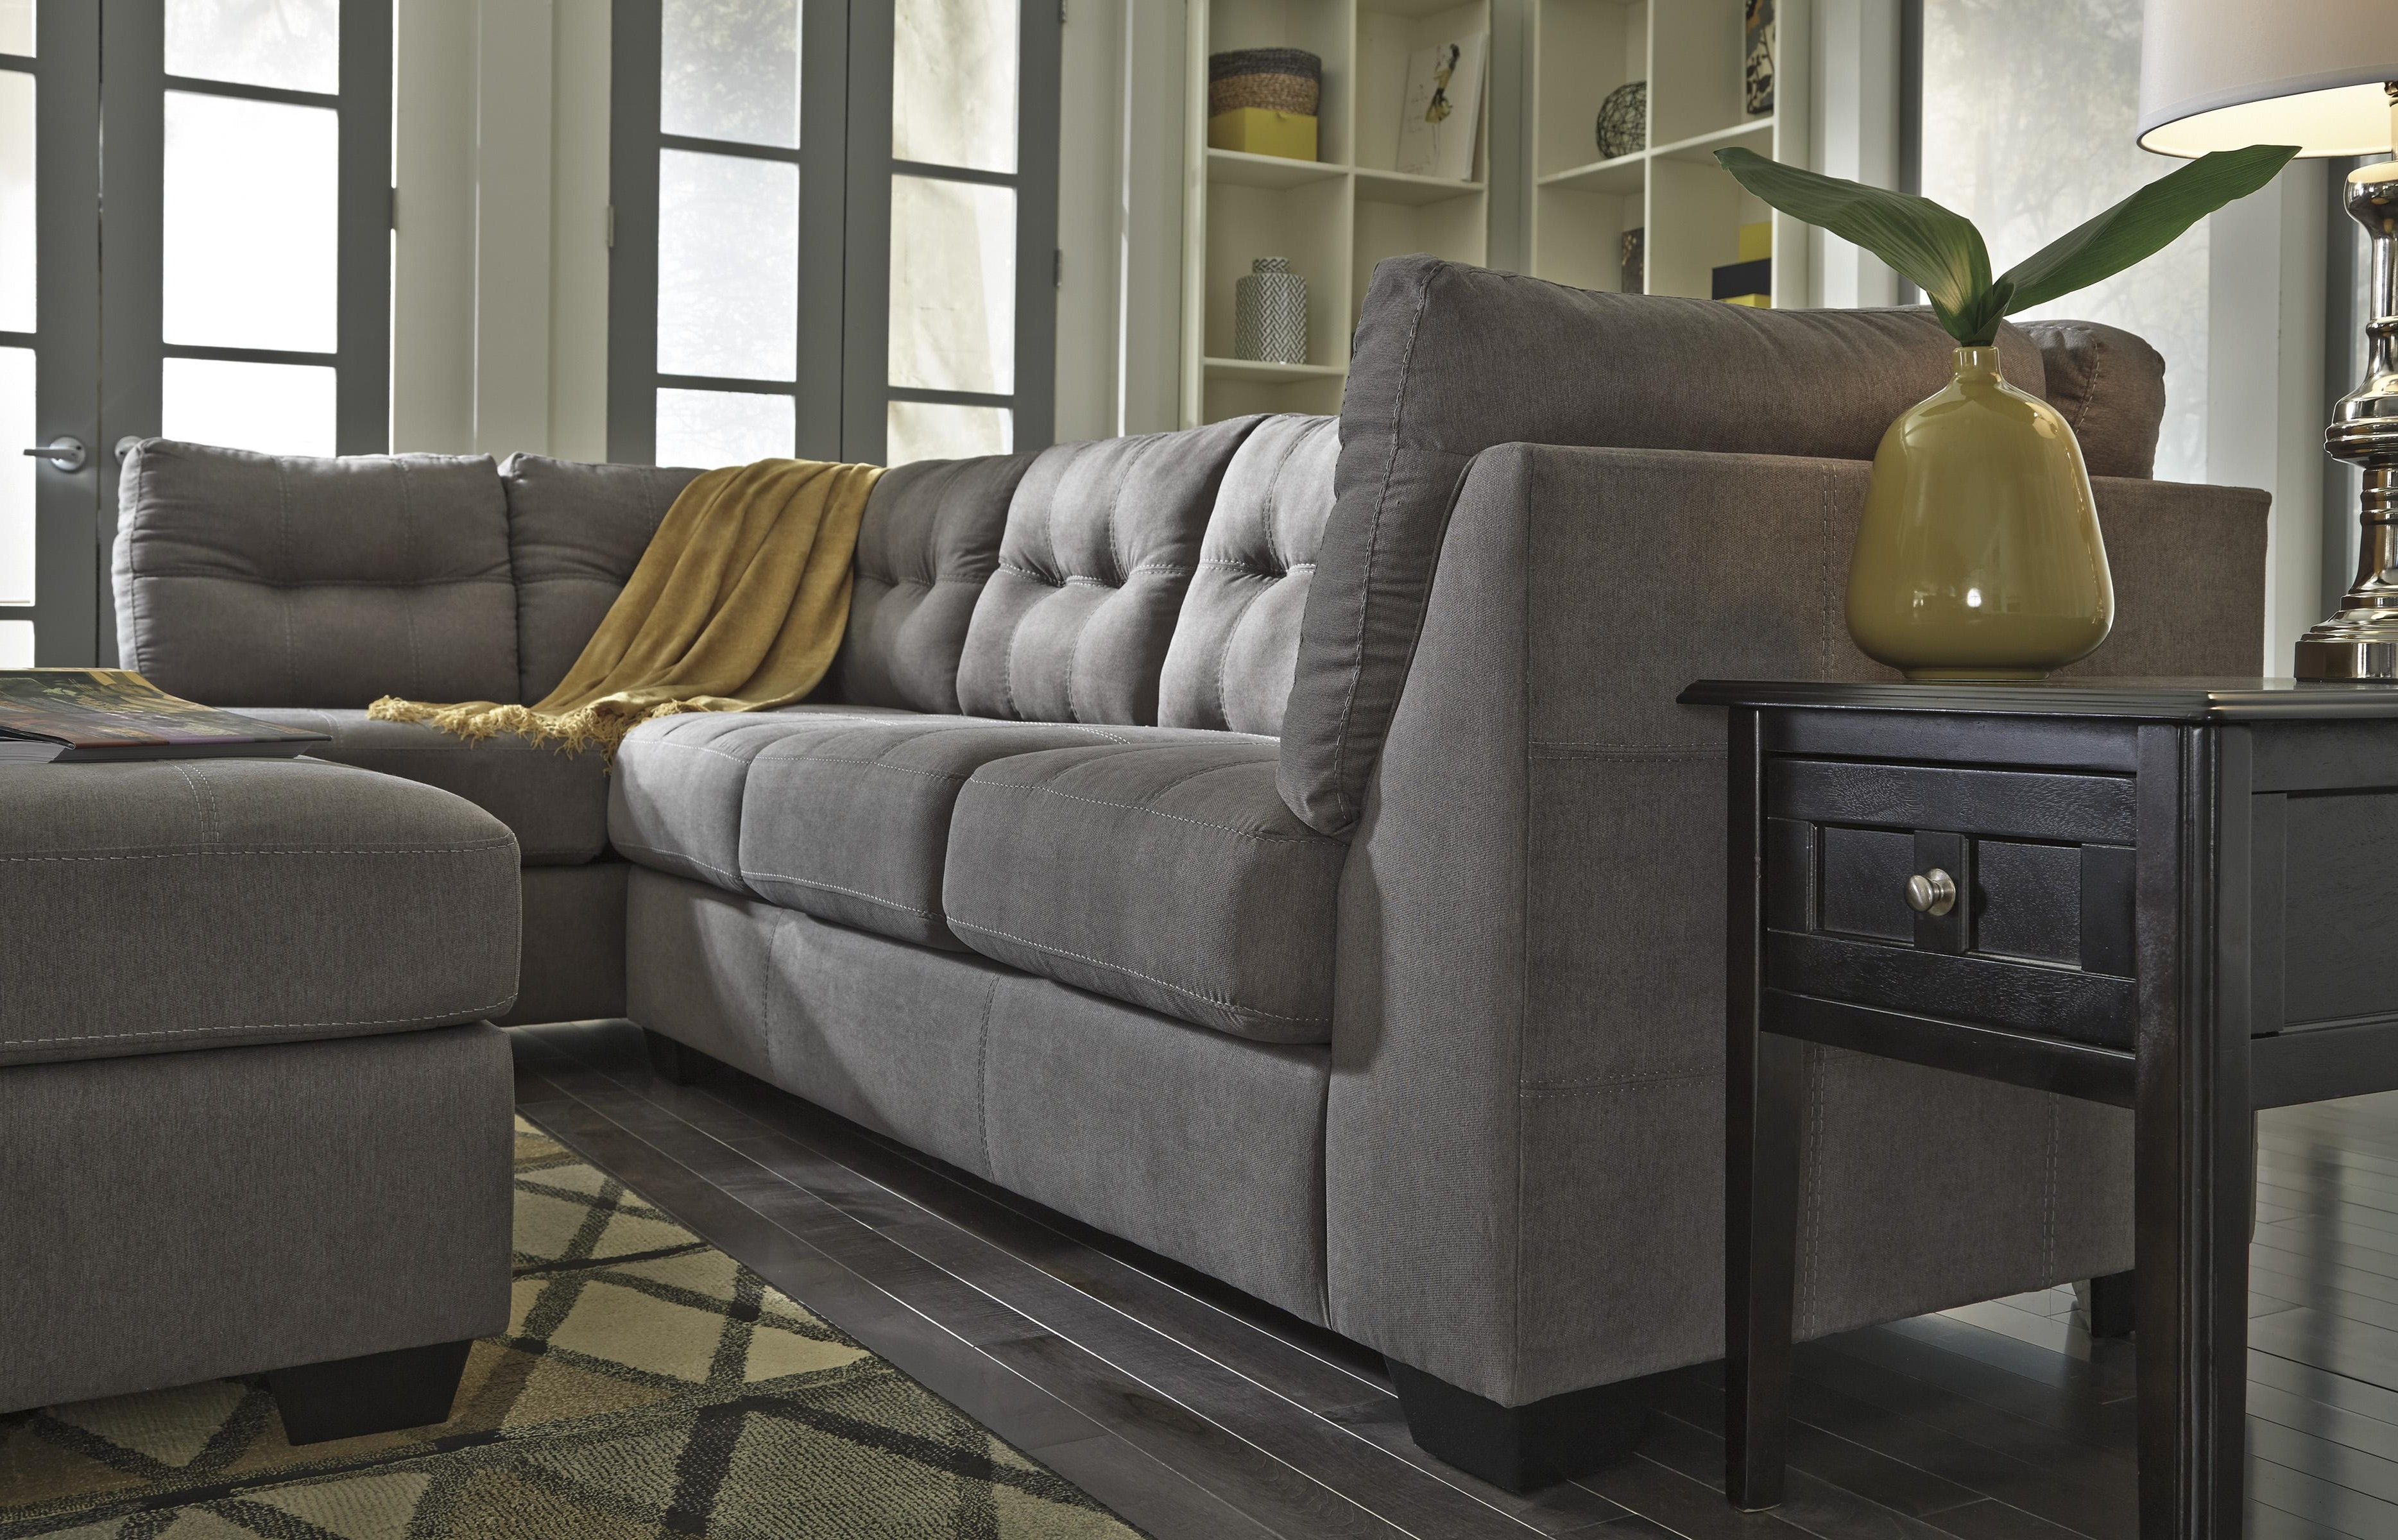 Wolf And Pertaining To Dayton Ohio Sectional Sofas (View 15 of 15)